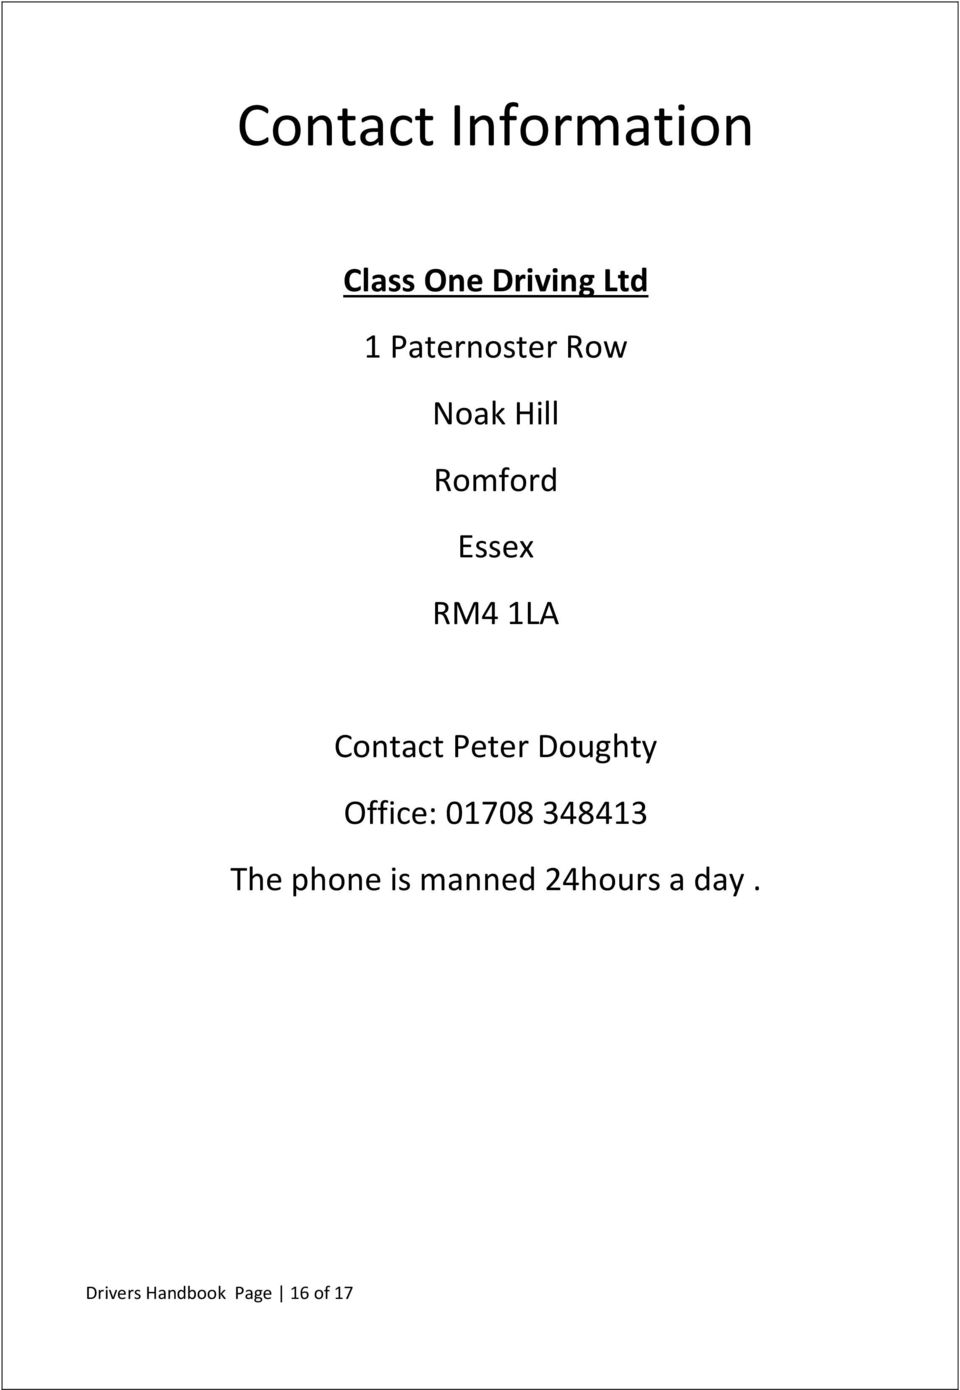 Contact Peter Doughty Office: 01708 348413 The